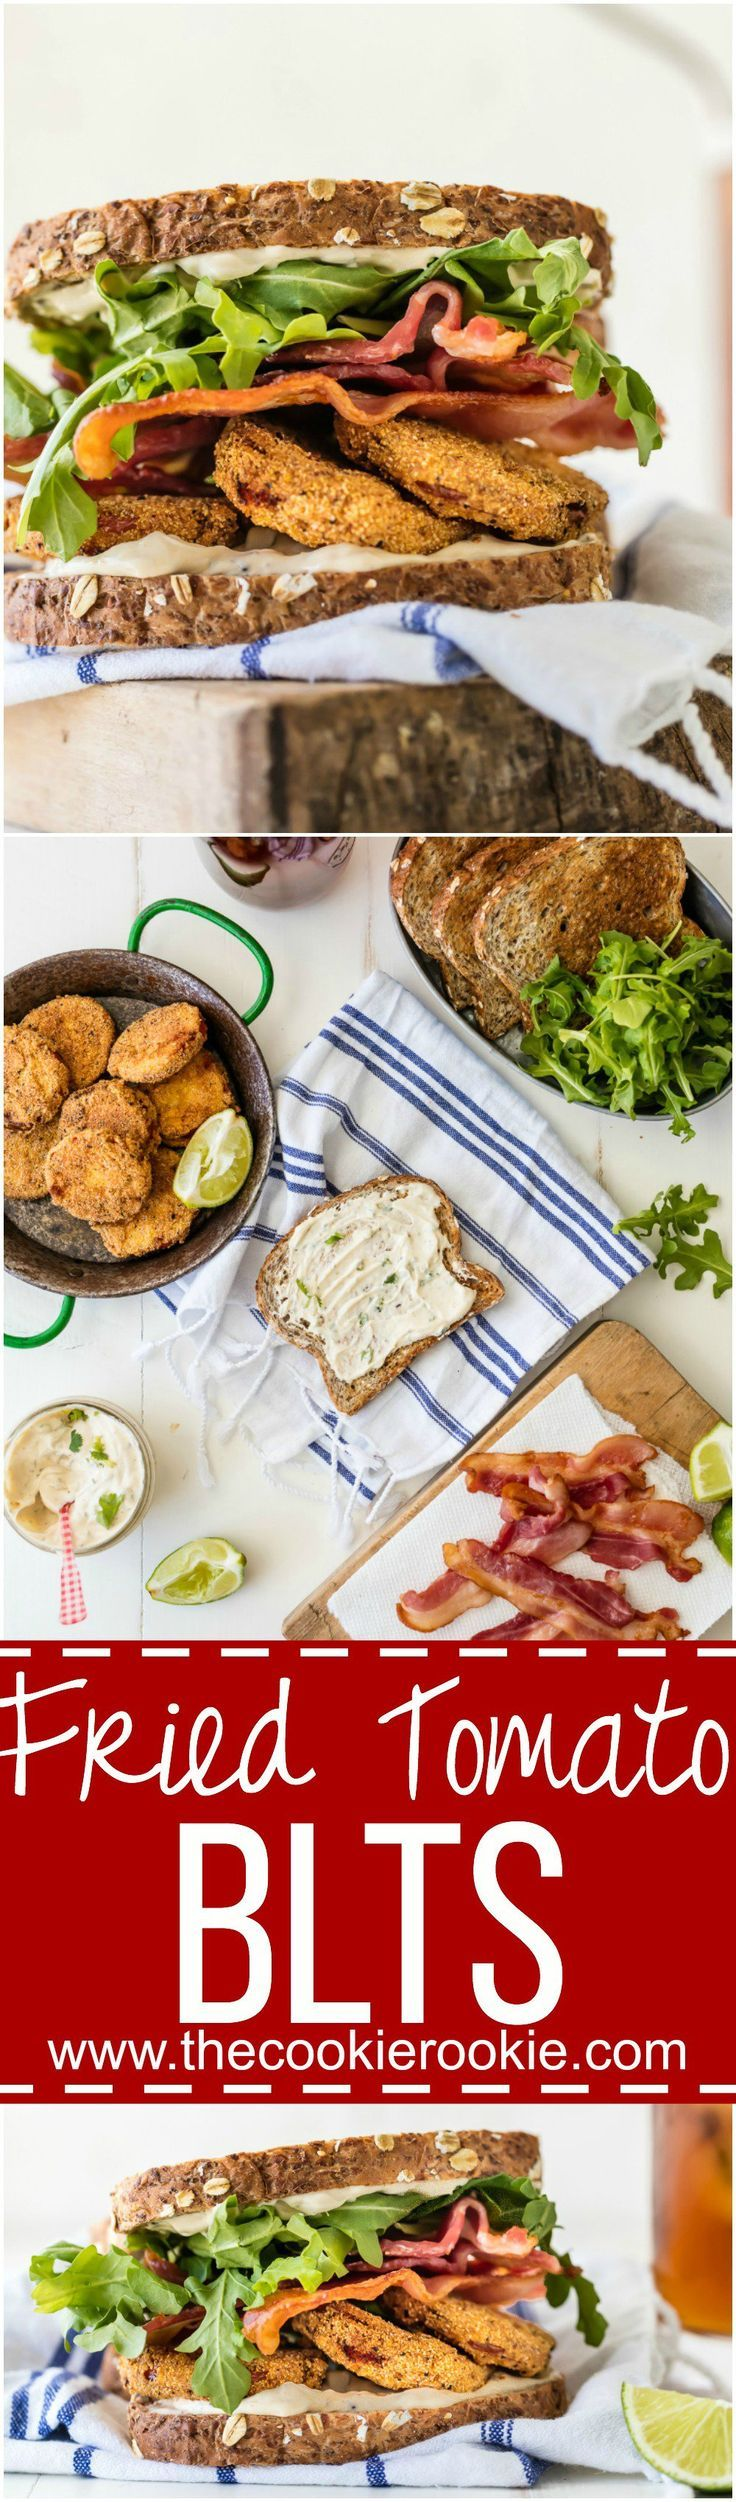 FRIED TOMATO BLTs with CILANTRO LIME MAYO is the best sandwich ever! Reimagine this classic recipe and make it a family favorite! Loaded with herbed fried tomatoes, cilantro lime mayo, arugula, and BACON! #BrightBites #ad